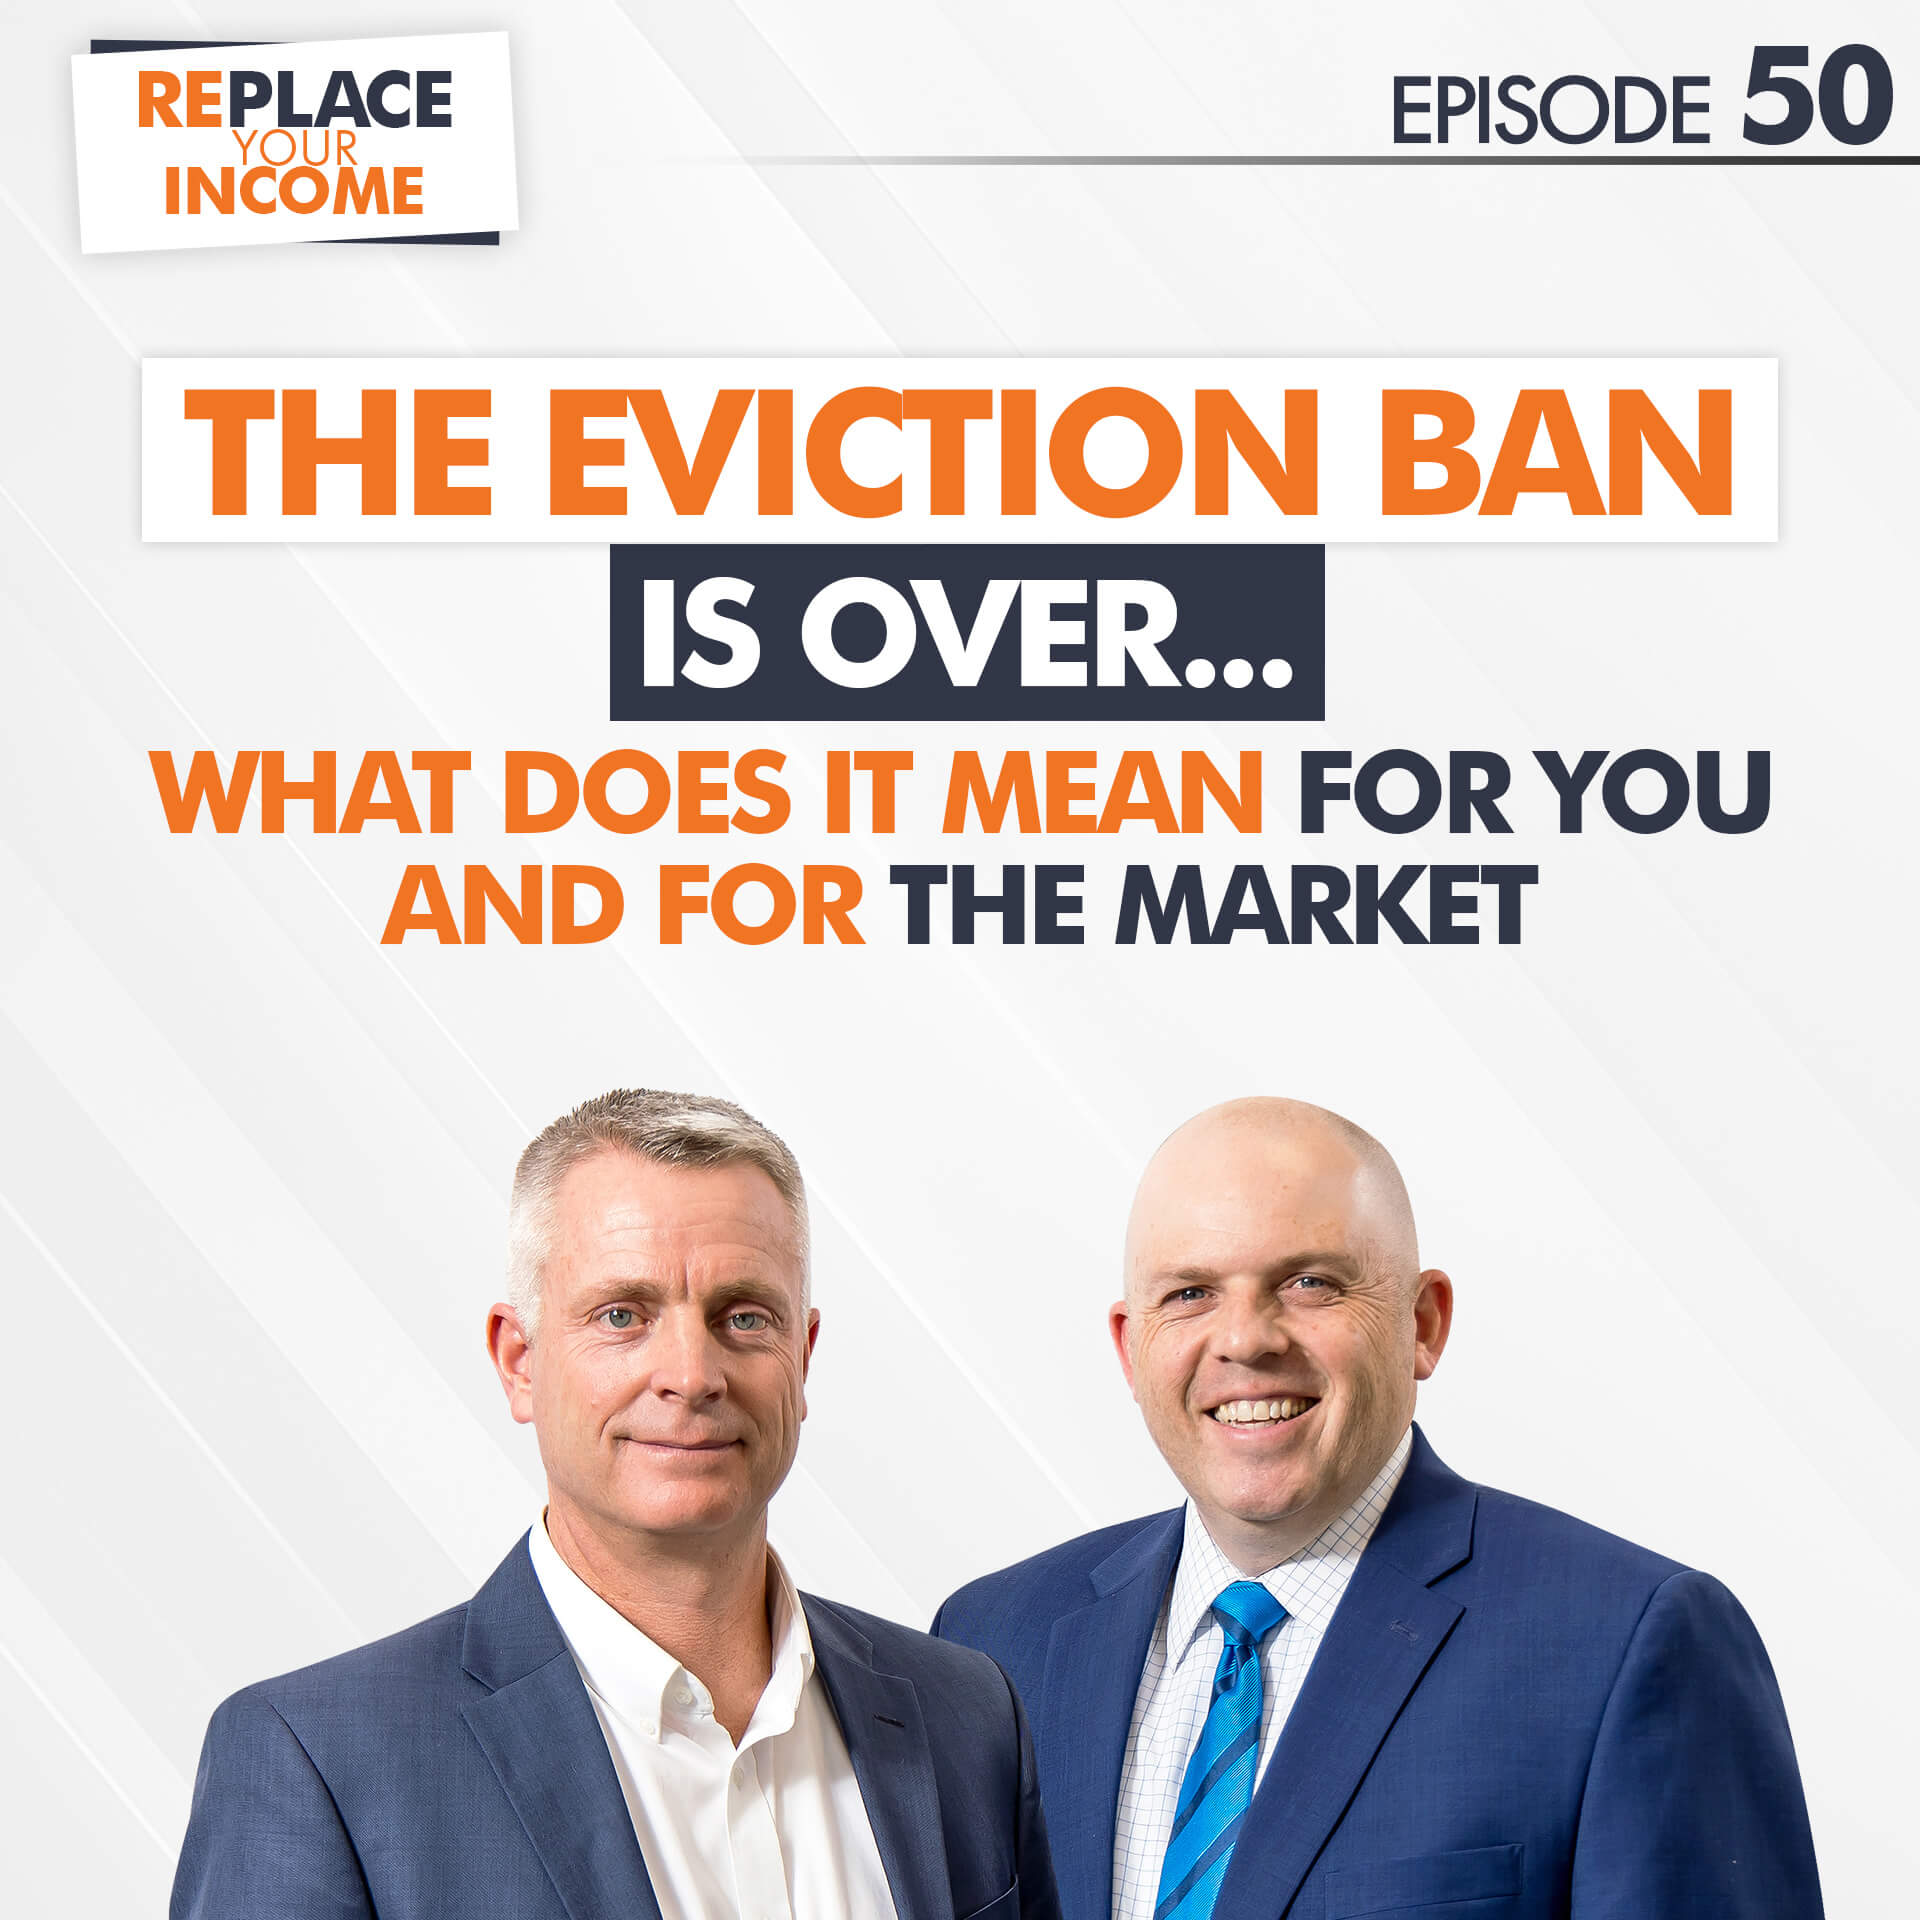 The Eviction Ban Is Over